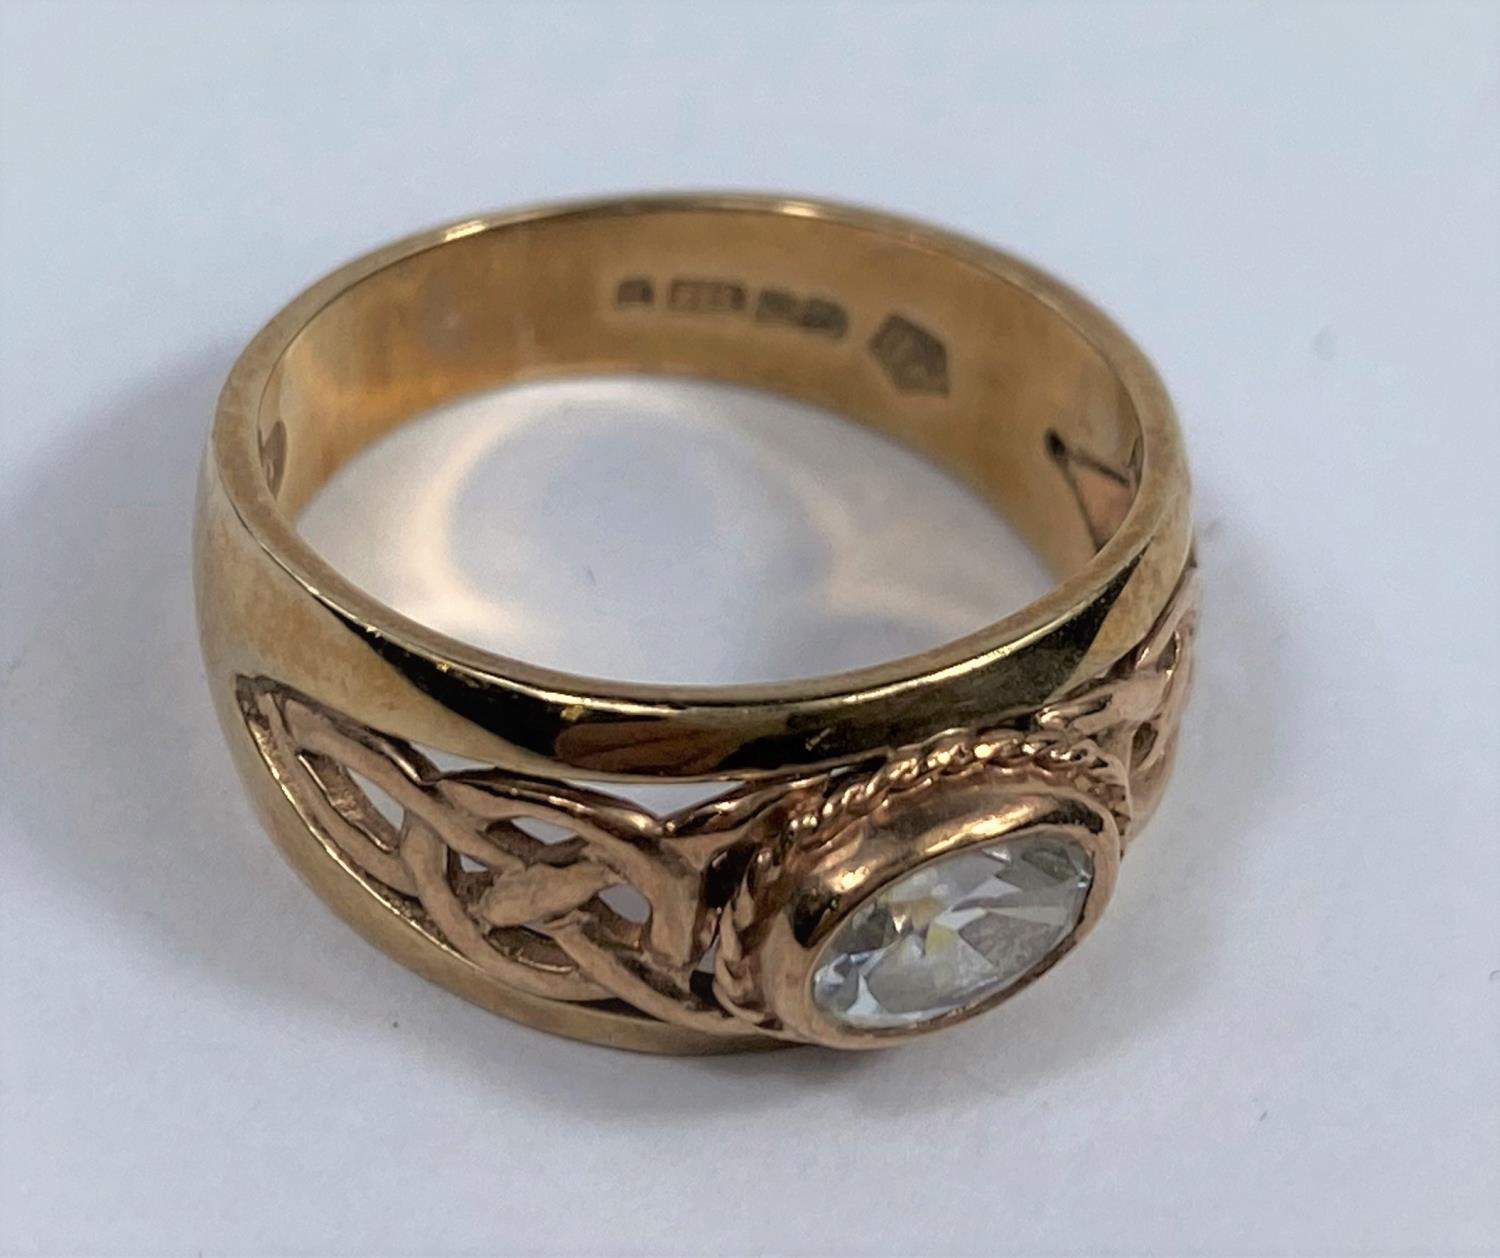 A 9 carat hallmarked gold period style ring set clear oval stone, the split shank with pierced - Image 2 of 5